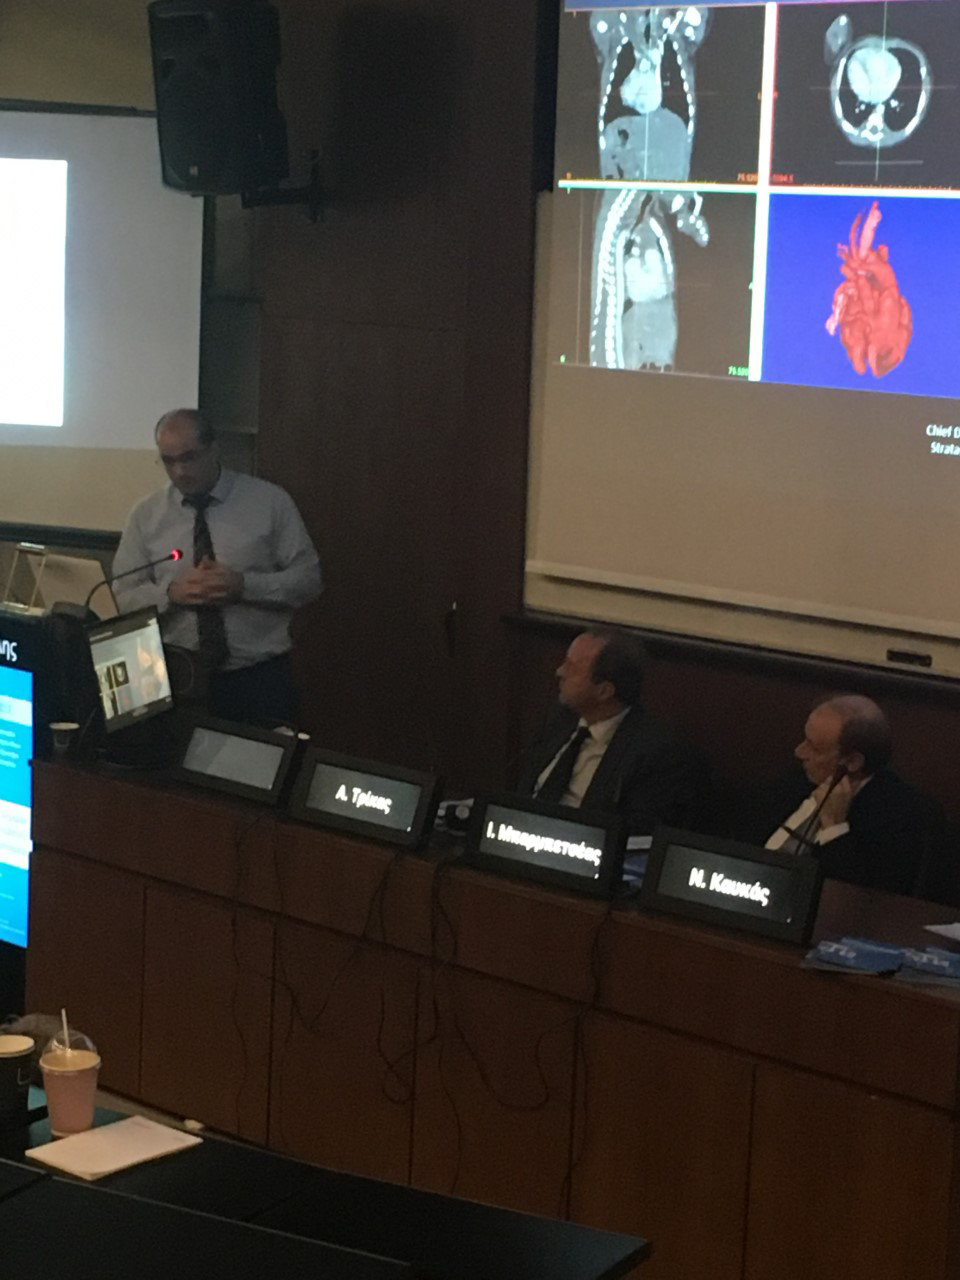 3D Life participates in Interventional Cardiology Conference